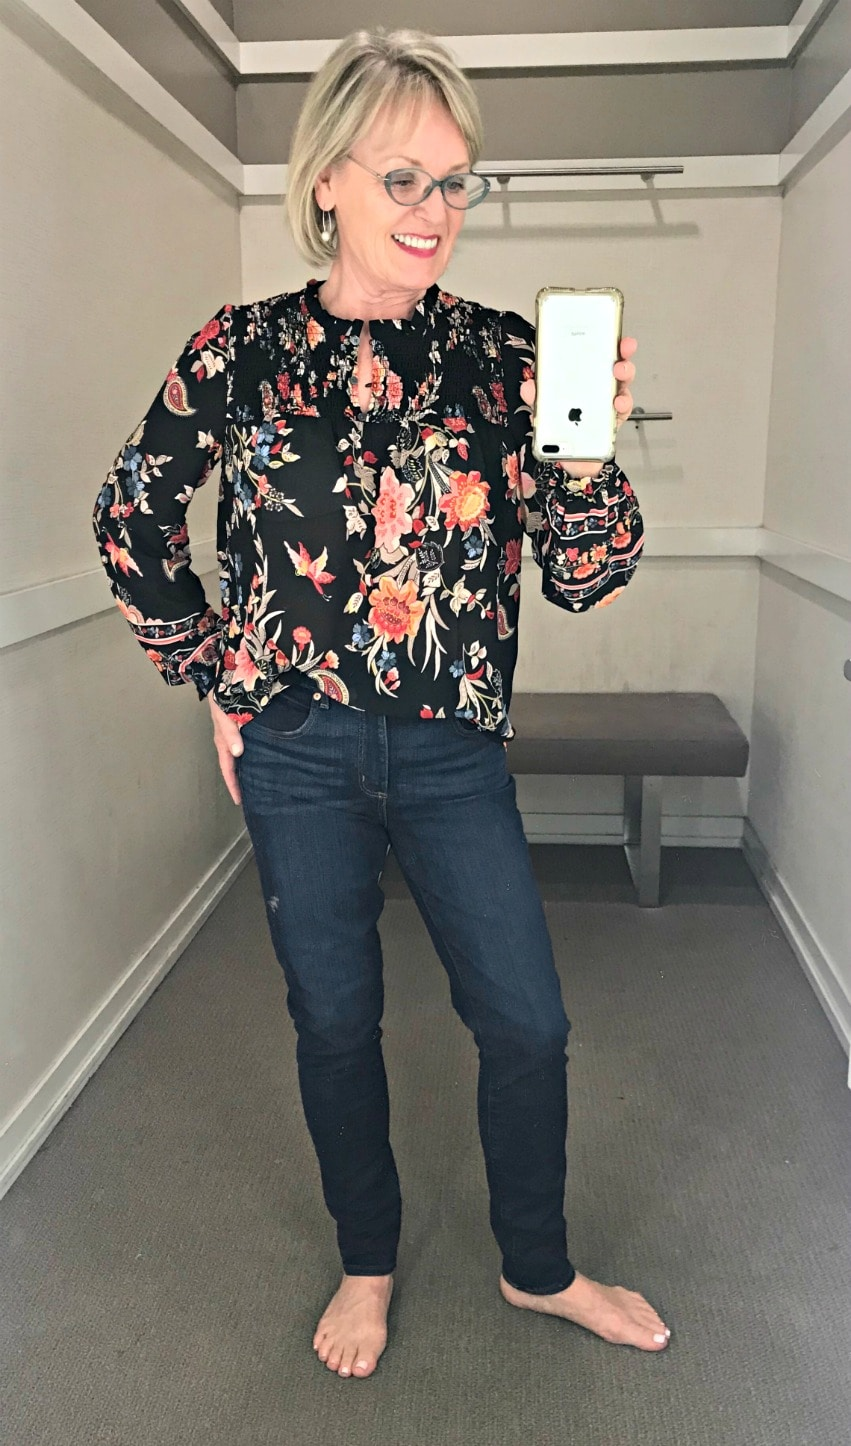 Jennifer Connolly of A Well Styled Life wearing dark floral top in the Loft changing room